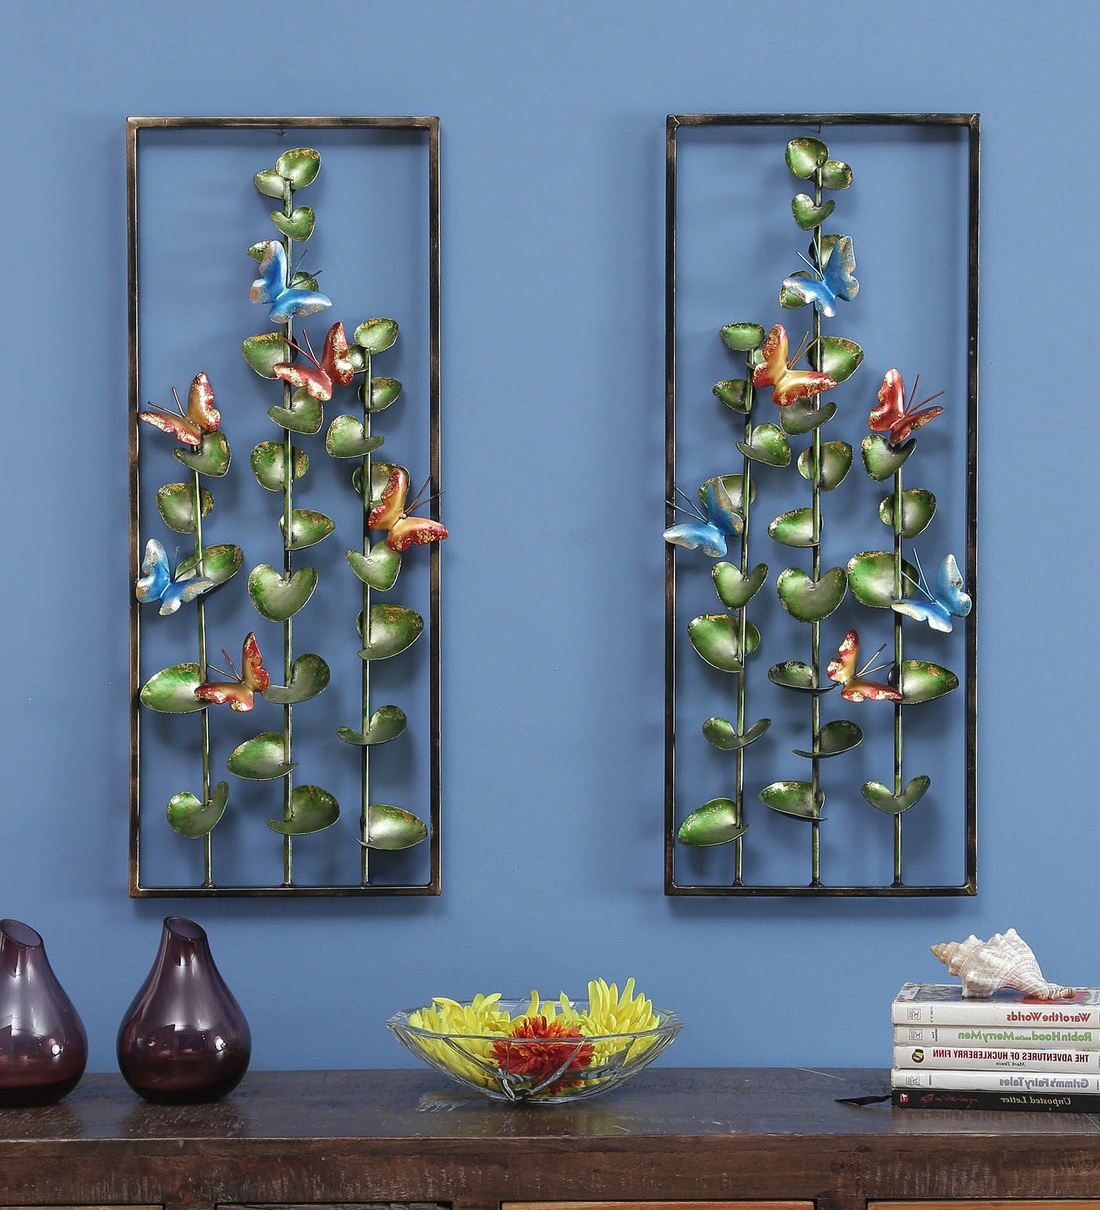 Recent Wrought Iron Decorative In Multicolour Set Of 2 Wall Art With Regard To 2 Piece Starburst Wall Décor Set By Wrought Studio (View 18 of 20)